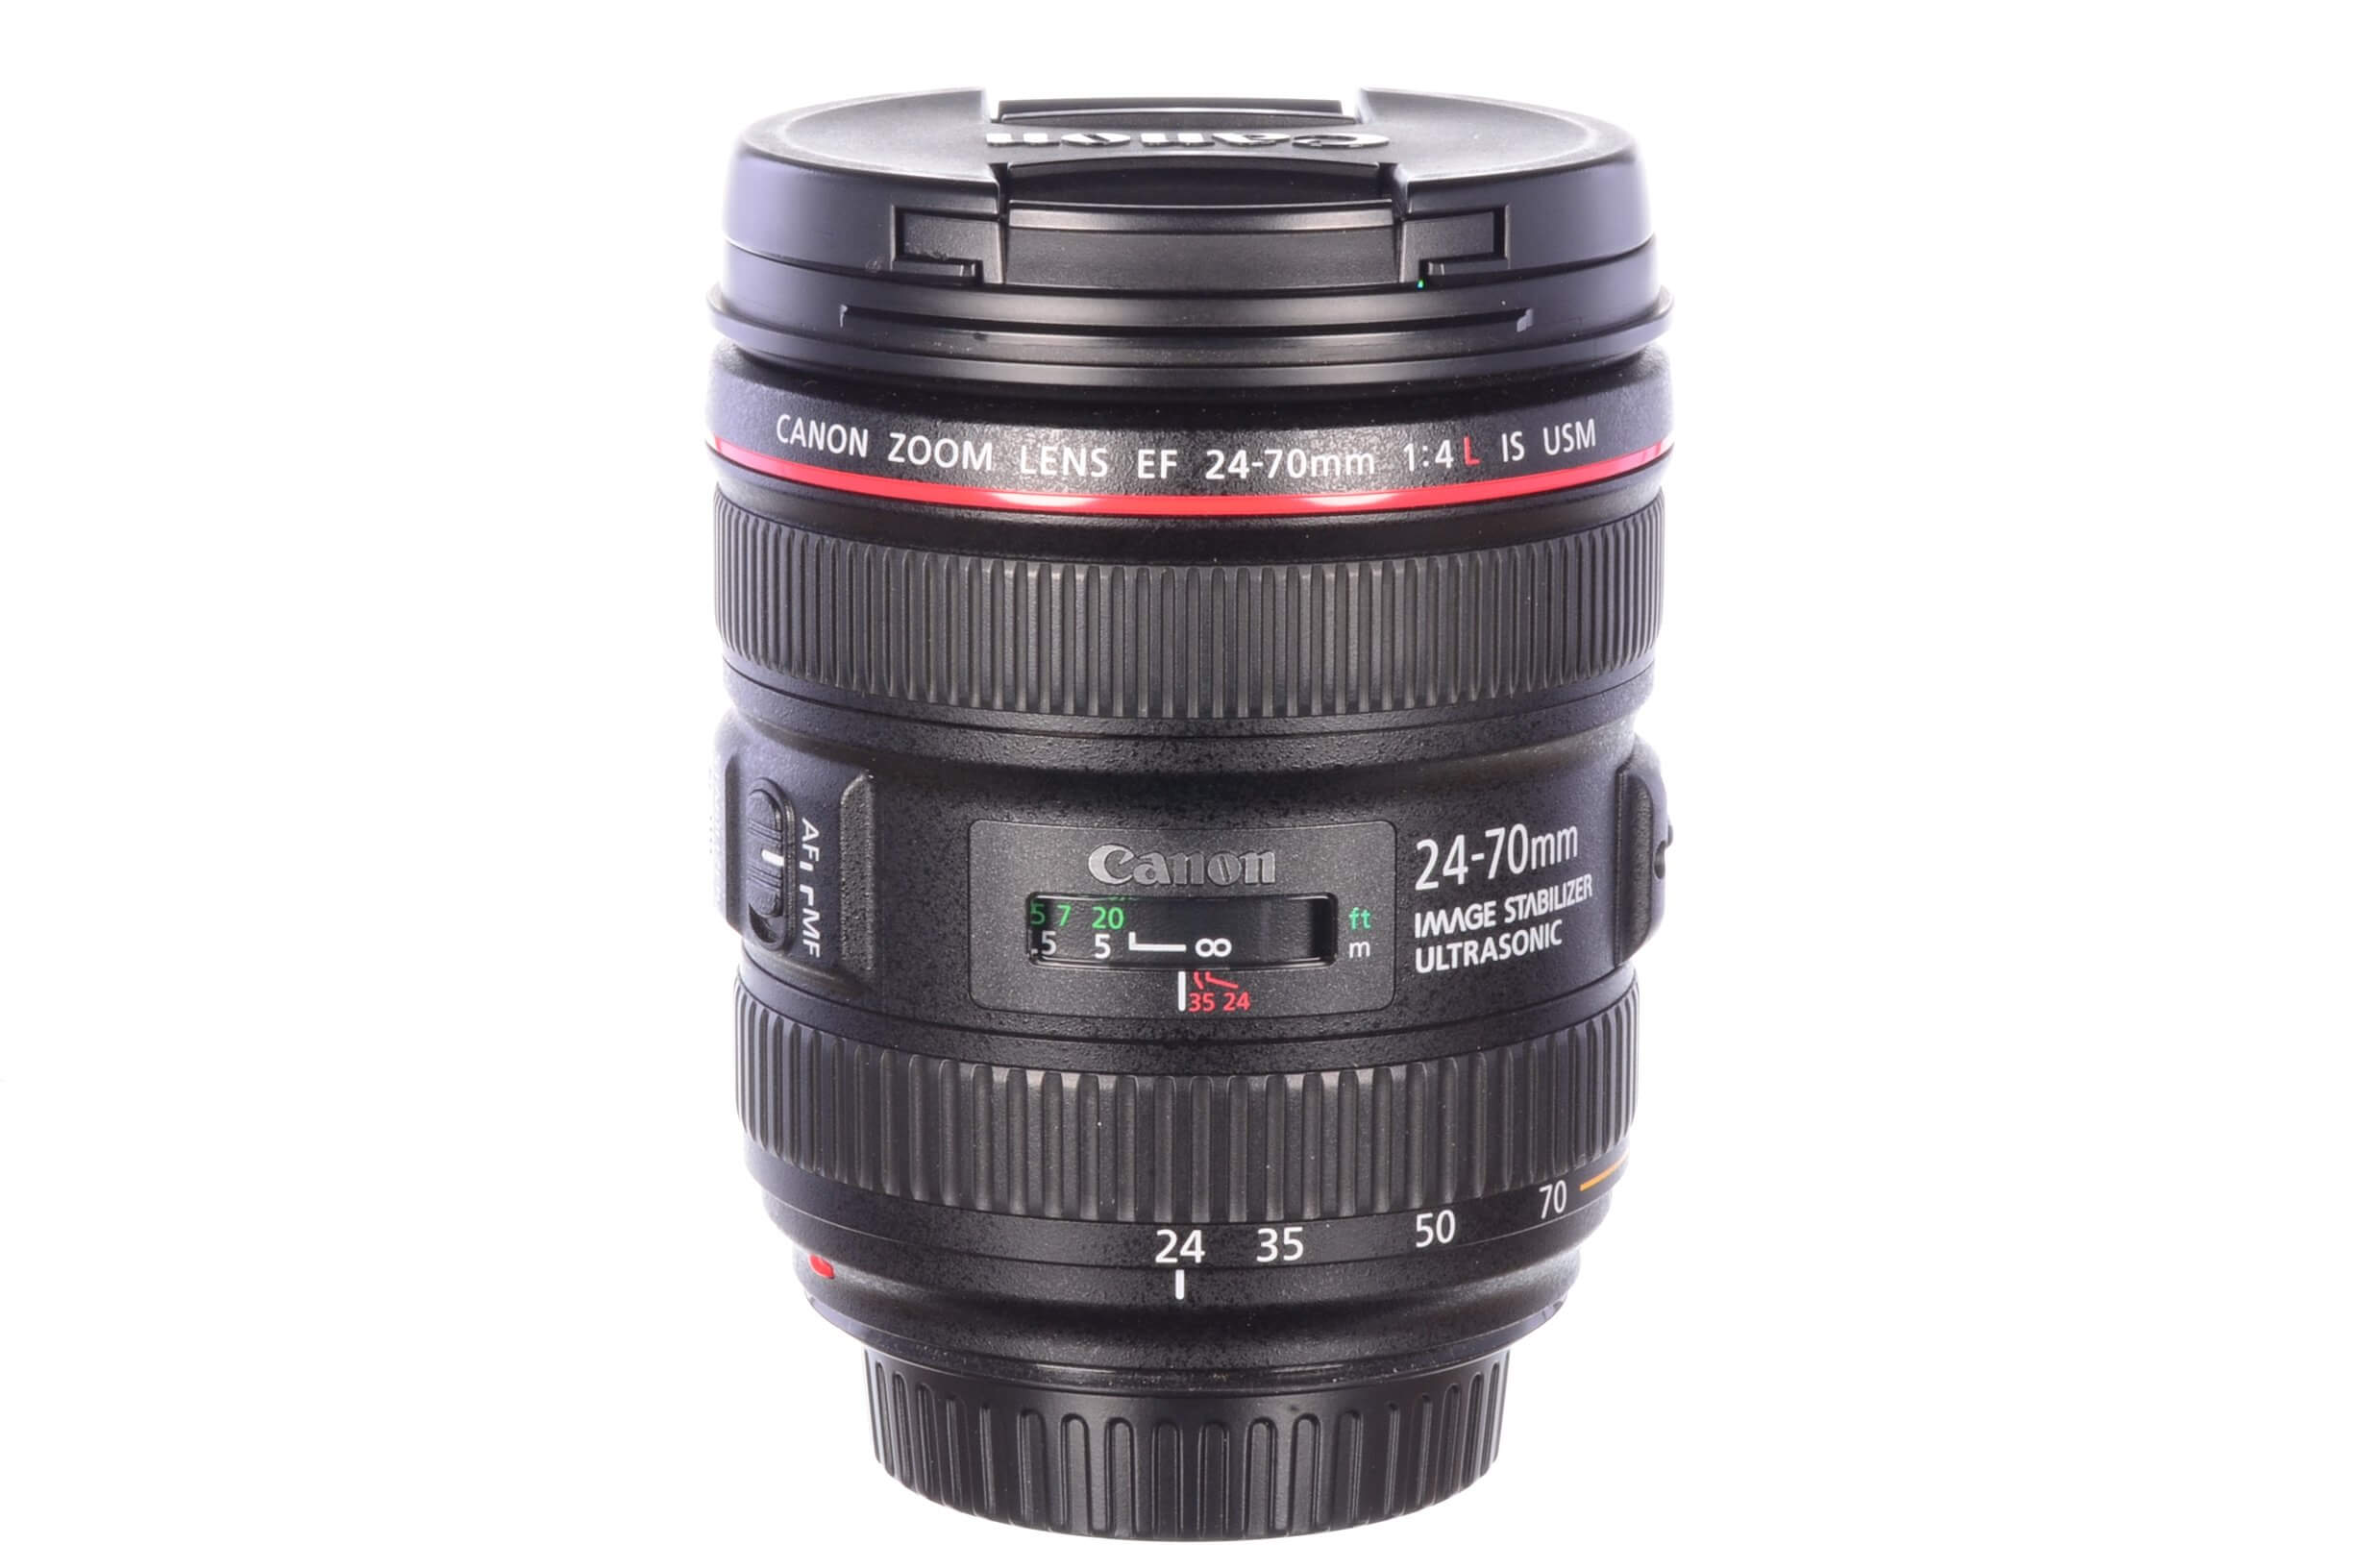 Canon 24-70mm f4 L IS USM, MINT!